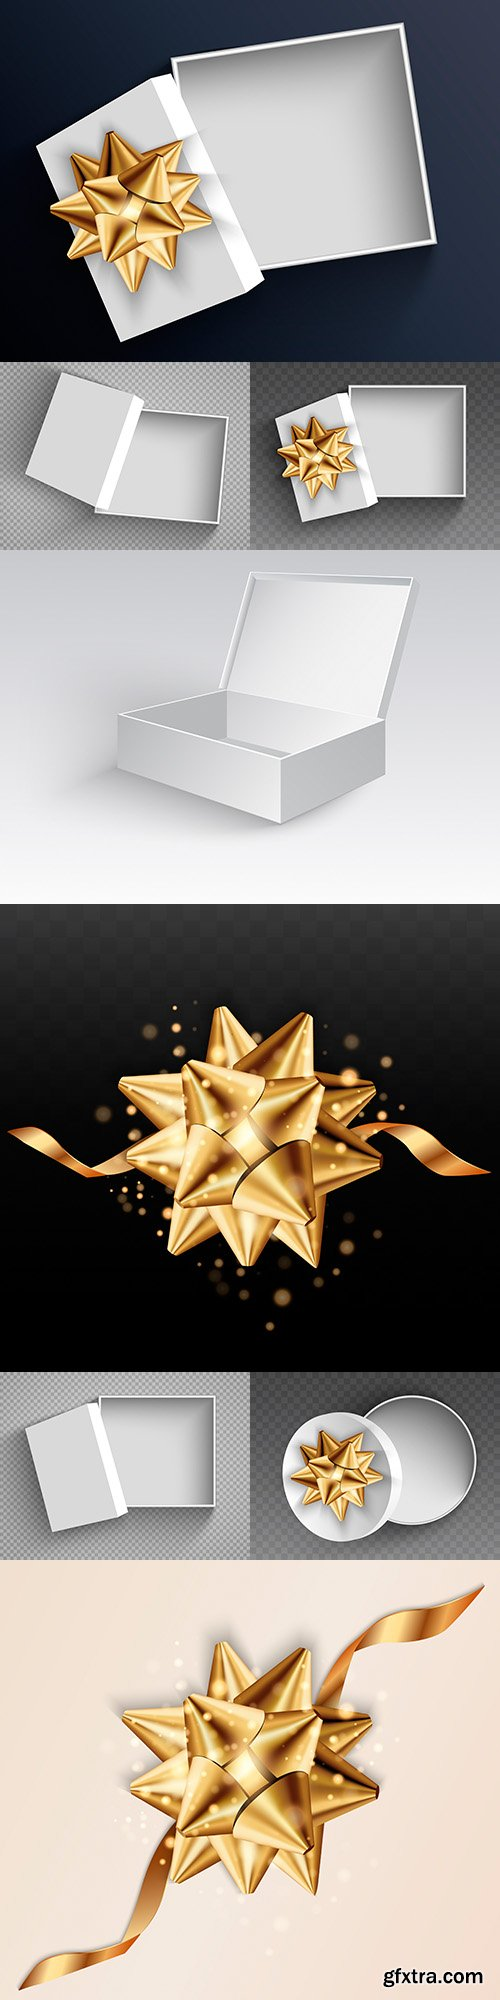 Gift box and decorative bow 3d illustration